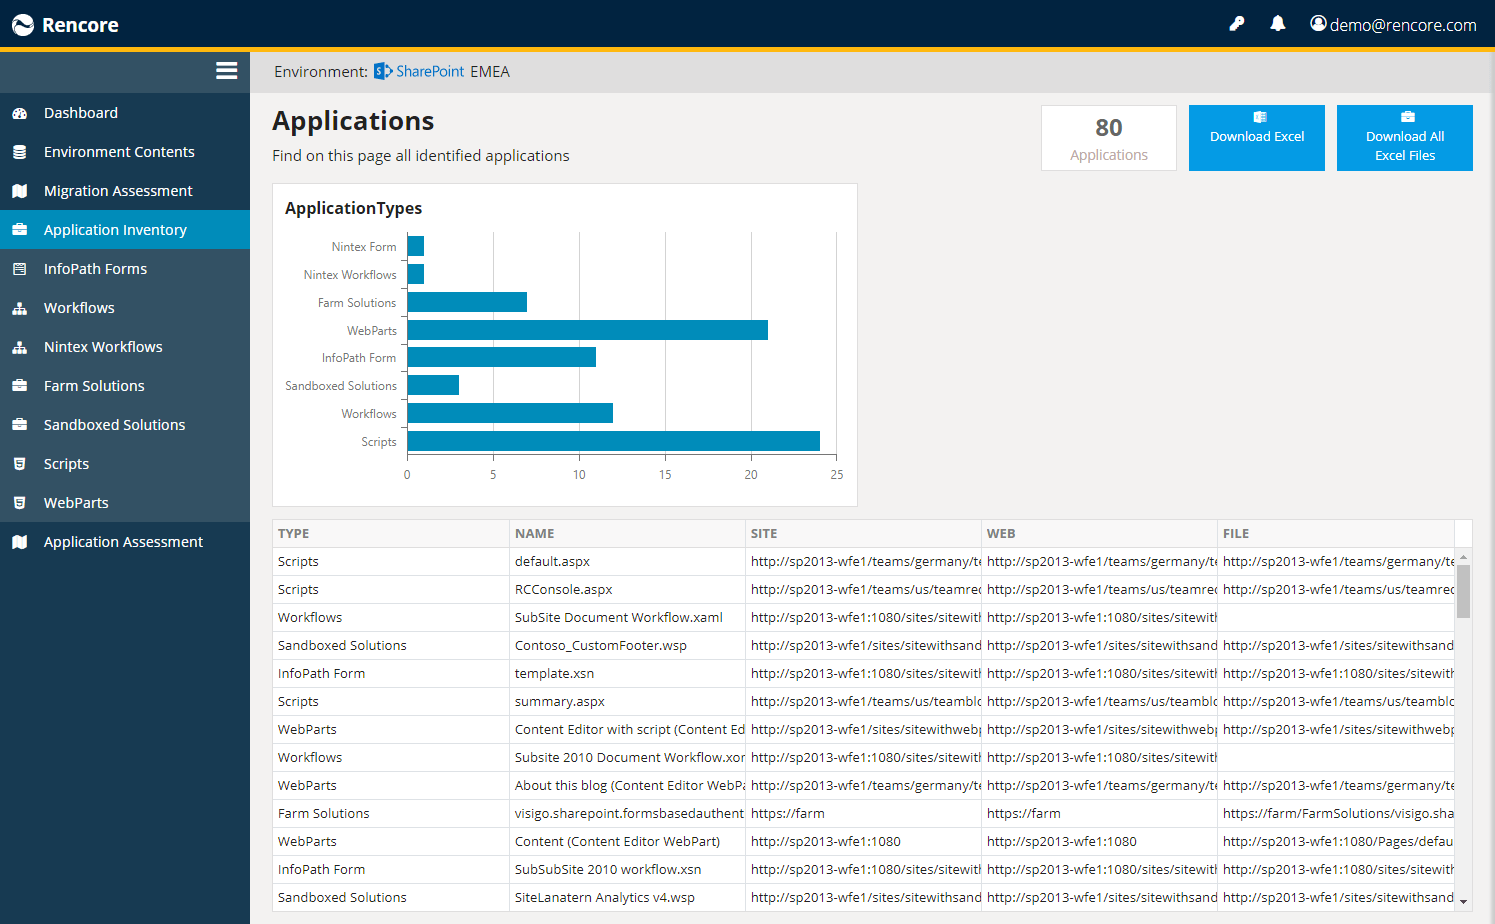 Rencore Migration Assessment Tool - Application Inventory